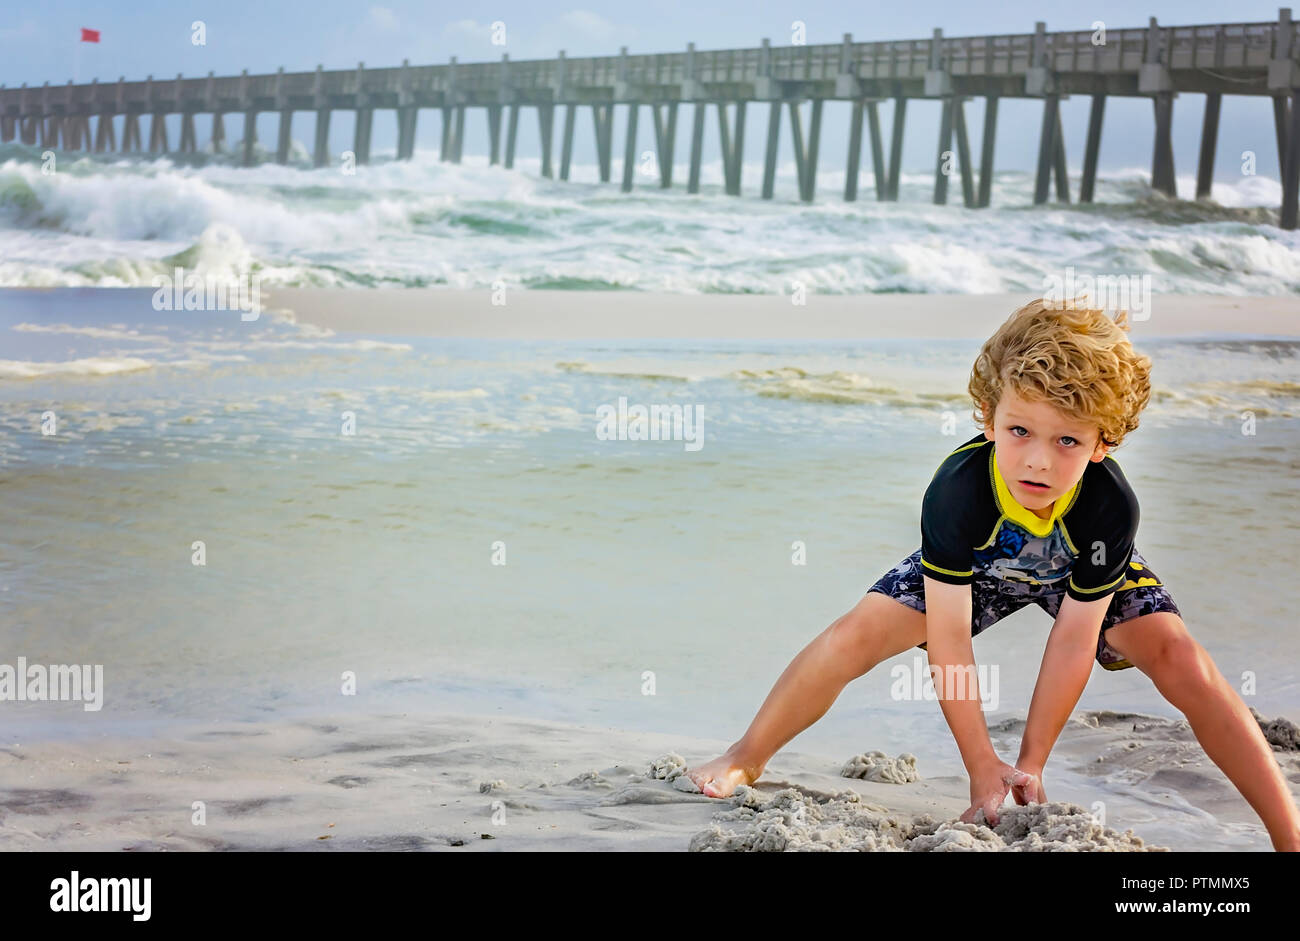 Pensacola Beach, Florida, USA. 9th Oct 2018. Noah Majors, 7, makes sand castles at Pensacola Beach pier as waves from Hurricane Michael churn up the Gulf, Oct. 9, 2018, in Pensacola Beach, Florida. Although red flags warned visitors to stay out of the water, that didn't stop them from gathering on the beaches across the Florida Panhandle to enjoy the surf. Hurricane Michael is expected to make landfall in Panama City, Oct. 10, 2018, as a category four hurricane.  Credit: Carmen K. Sisson/Cloudybright/Alamy Live News Stock Photo